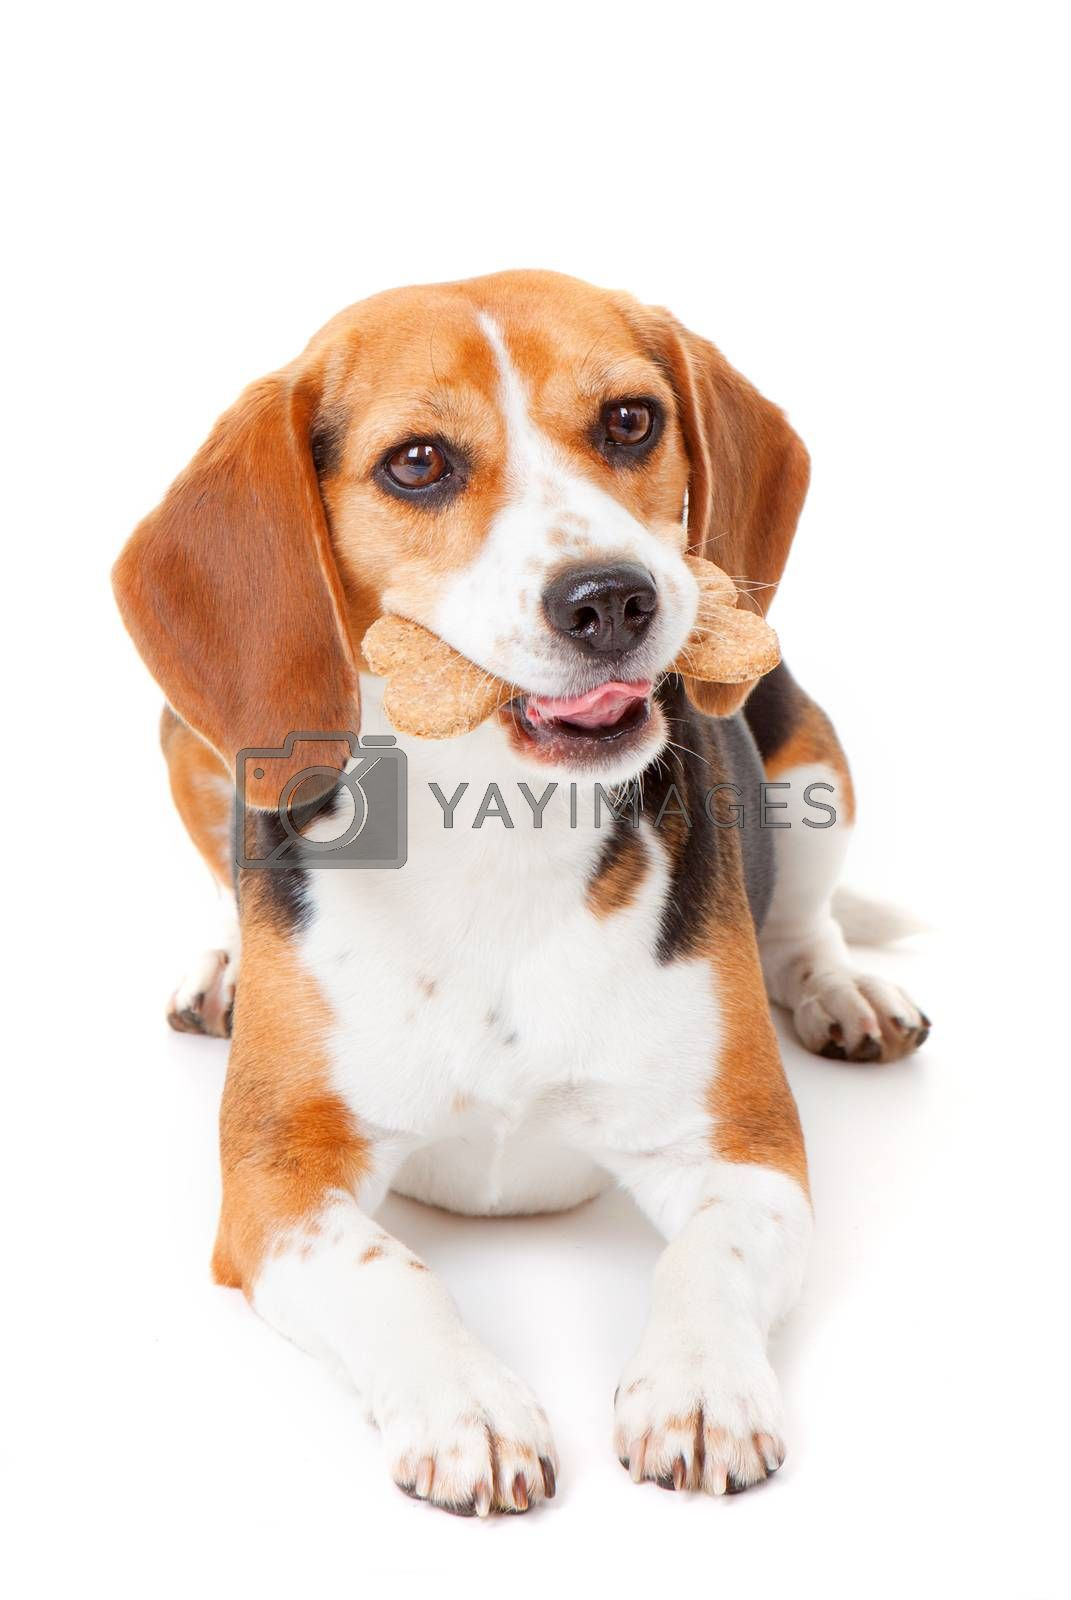 beagle dog with bone shaped dog biscuit